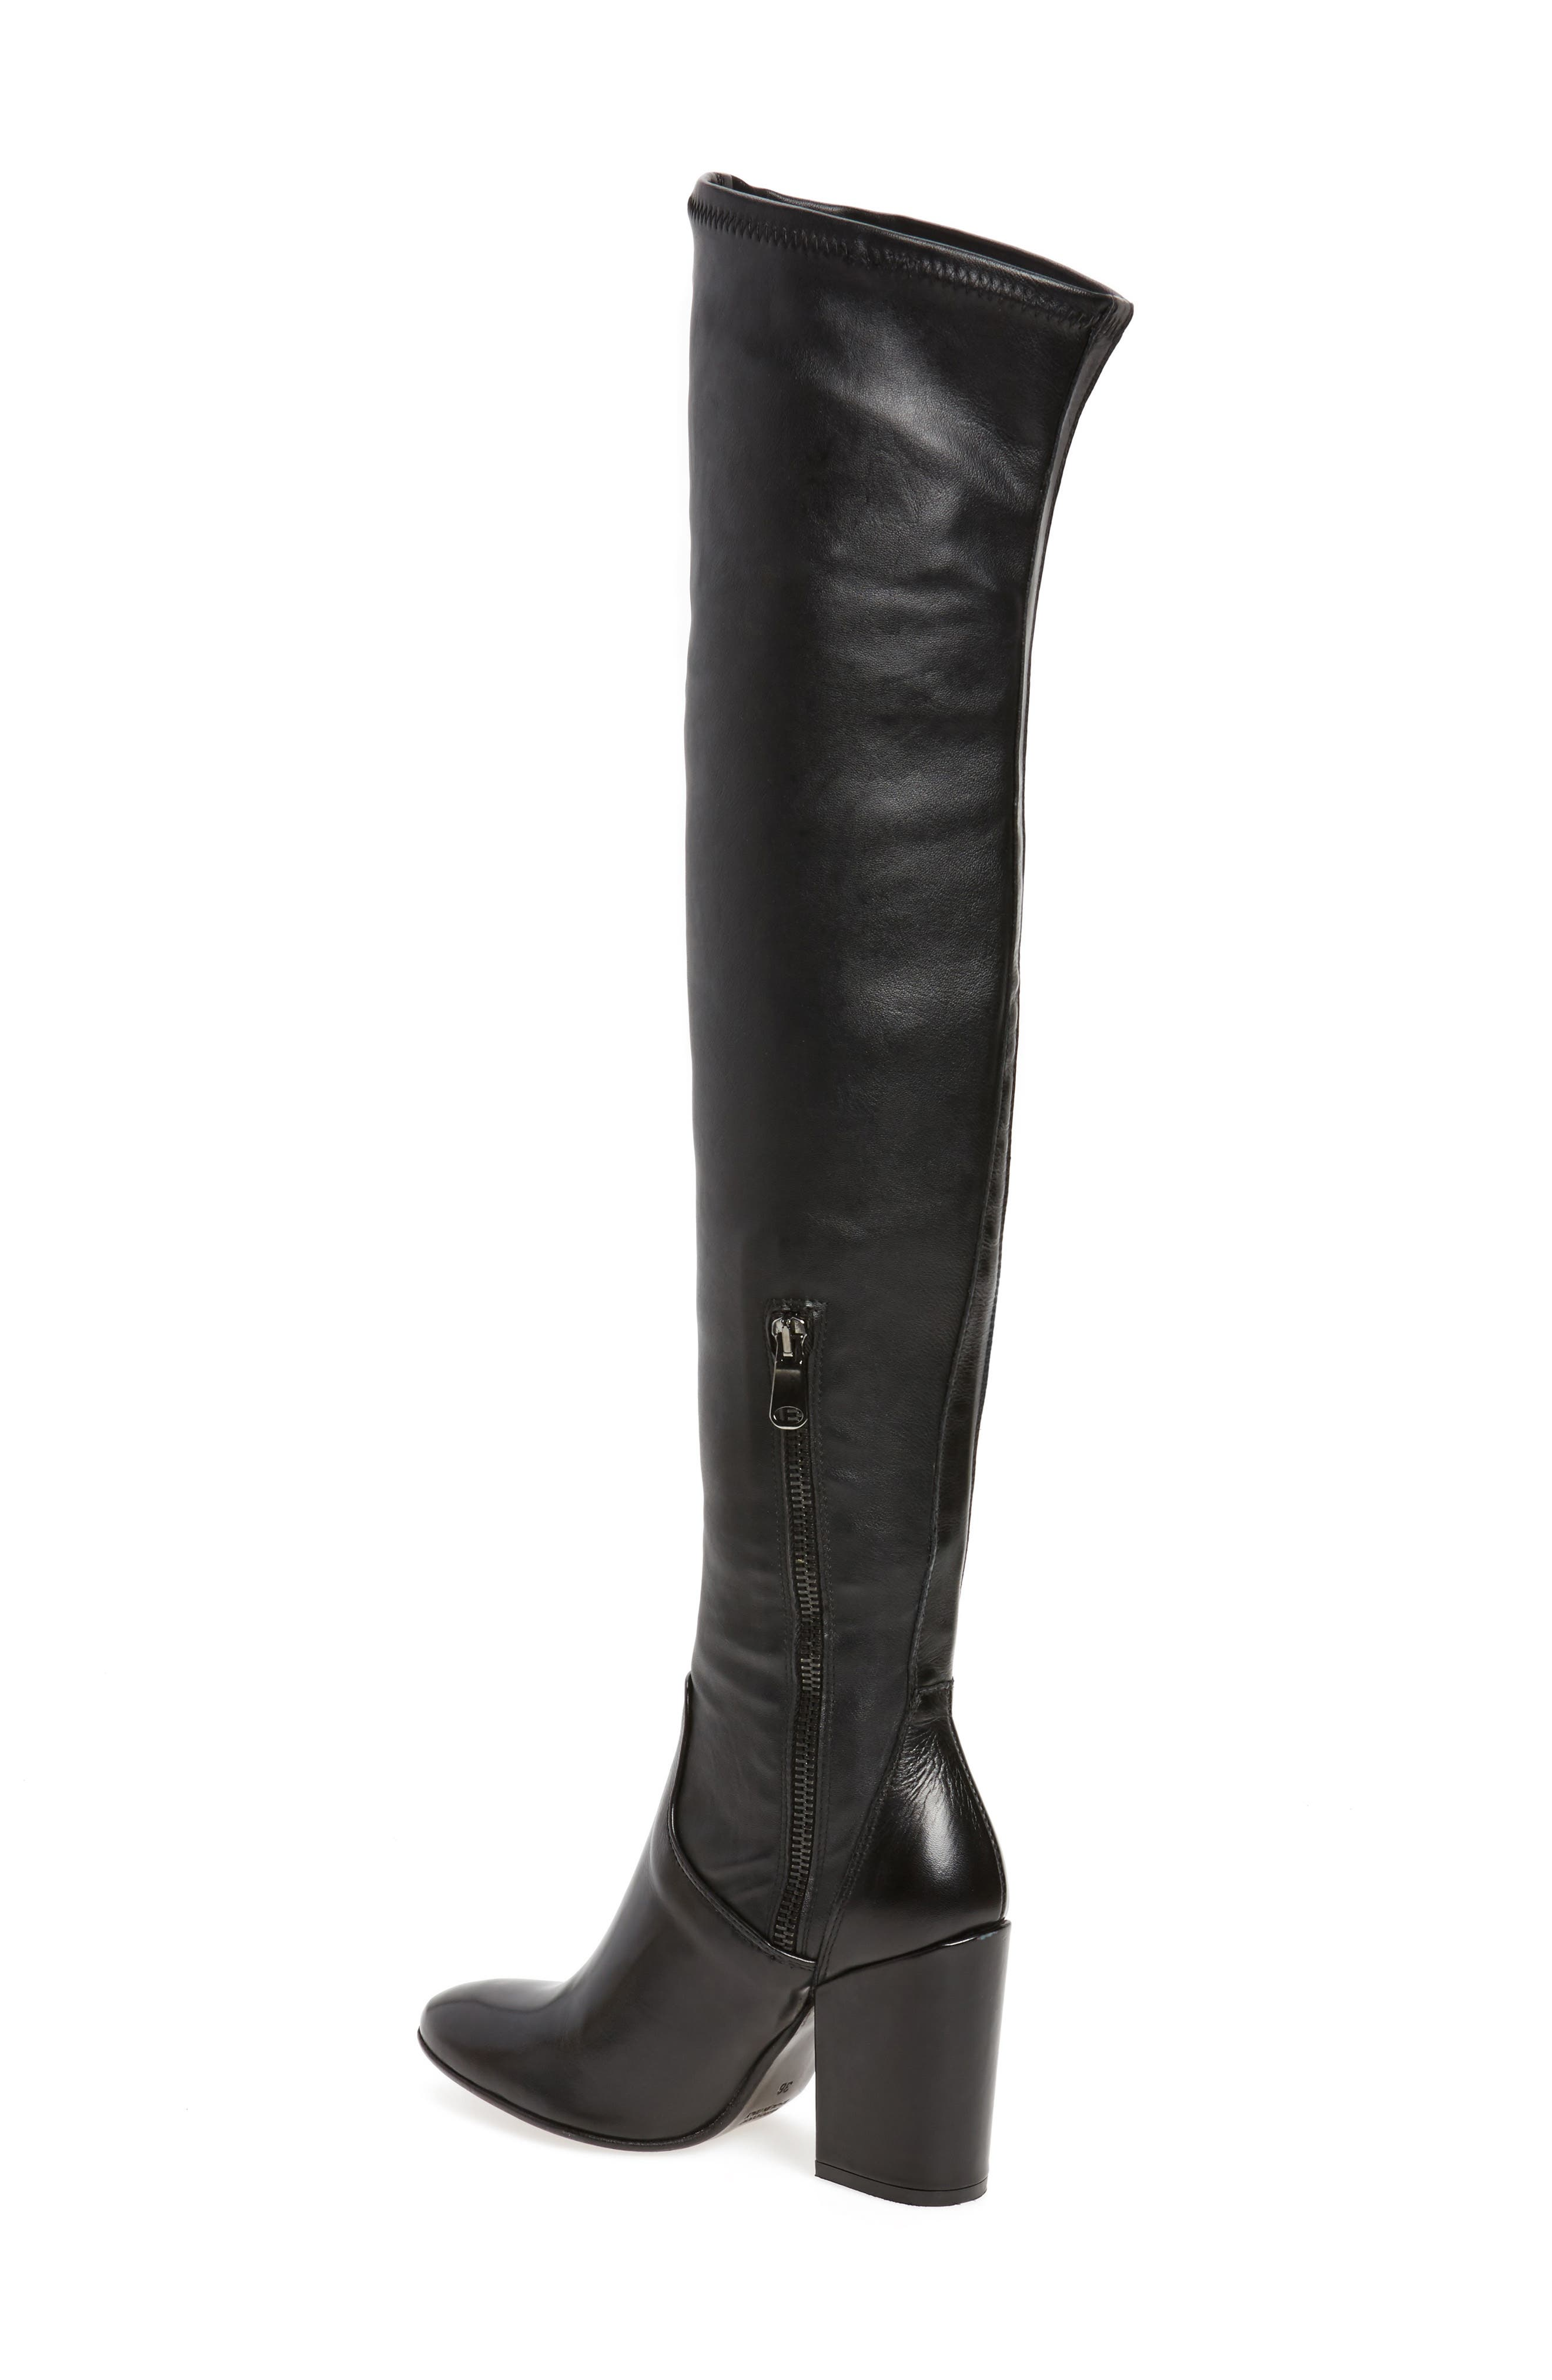 Clarice Over the Knee Boot,                             Alternate thumbnail 2, color,                             Black Leather